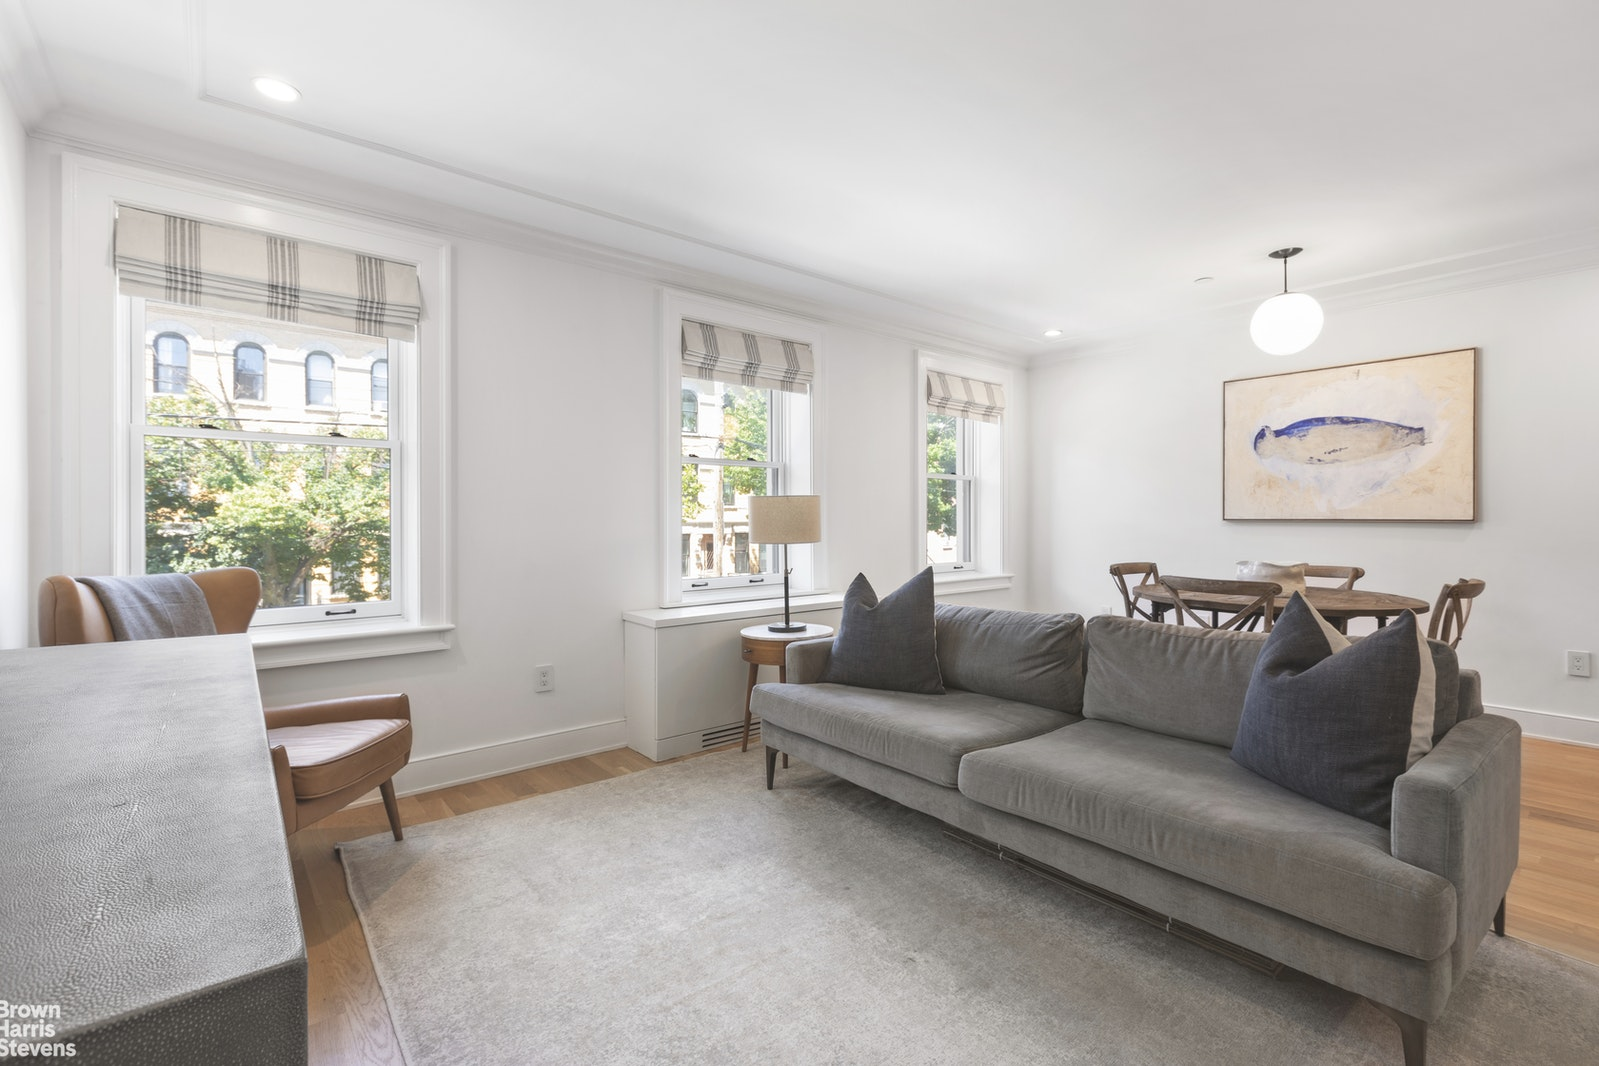 110 Putnam Avenue 2, Bedford Stuyvesant, Brooklyn, NY, 11238, $1,050,000, Property For Sale, Halstead Real Estate, Photo 1